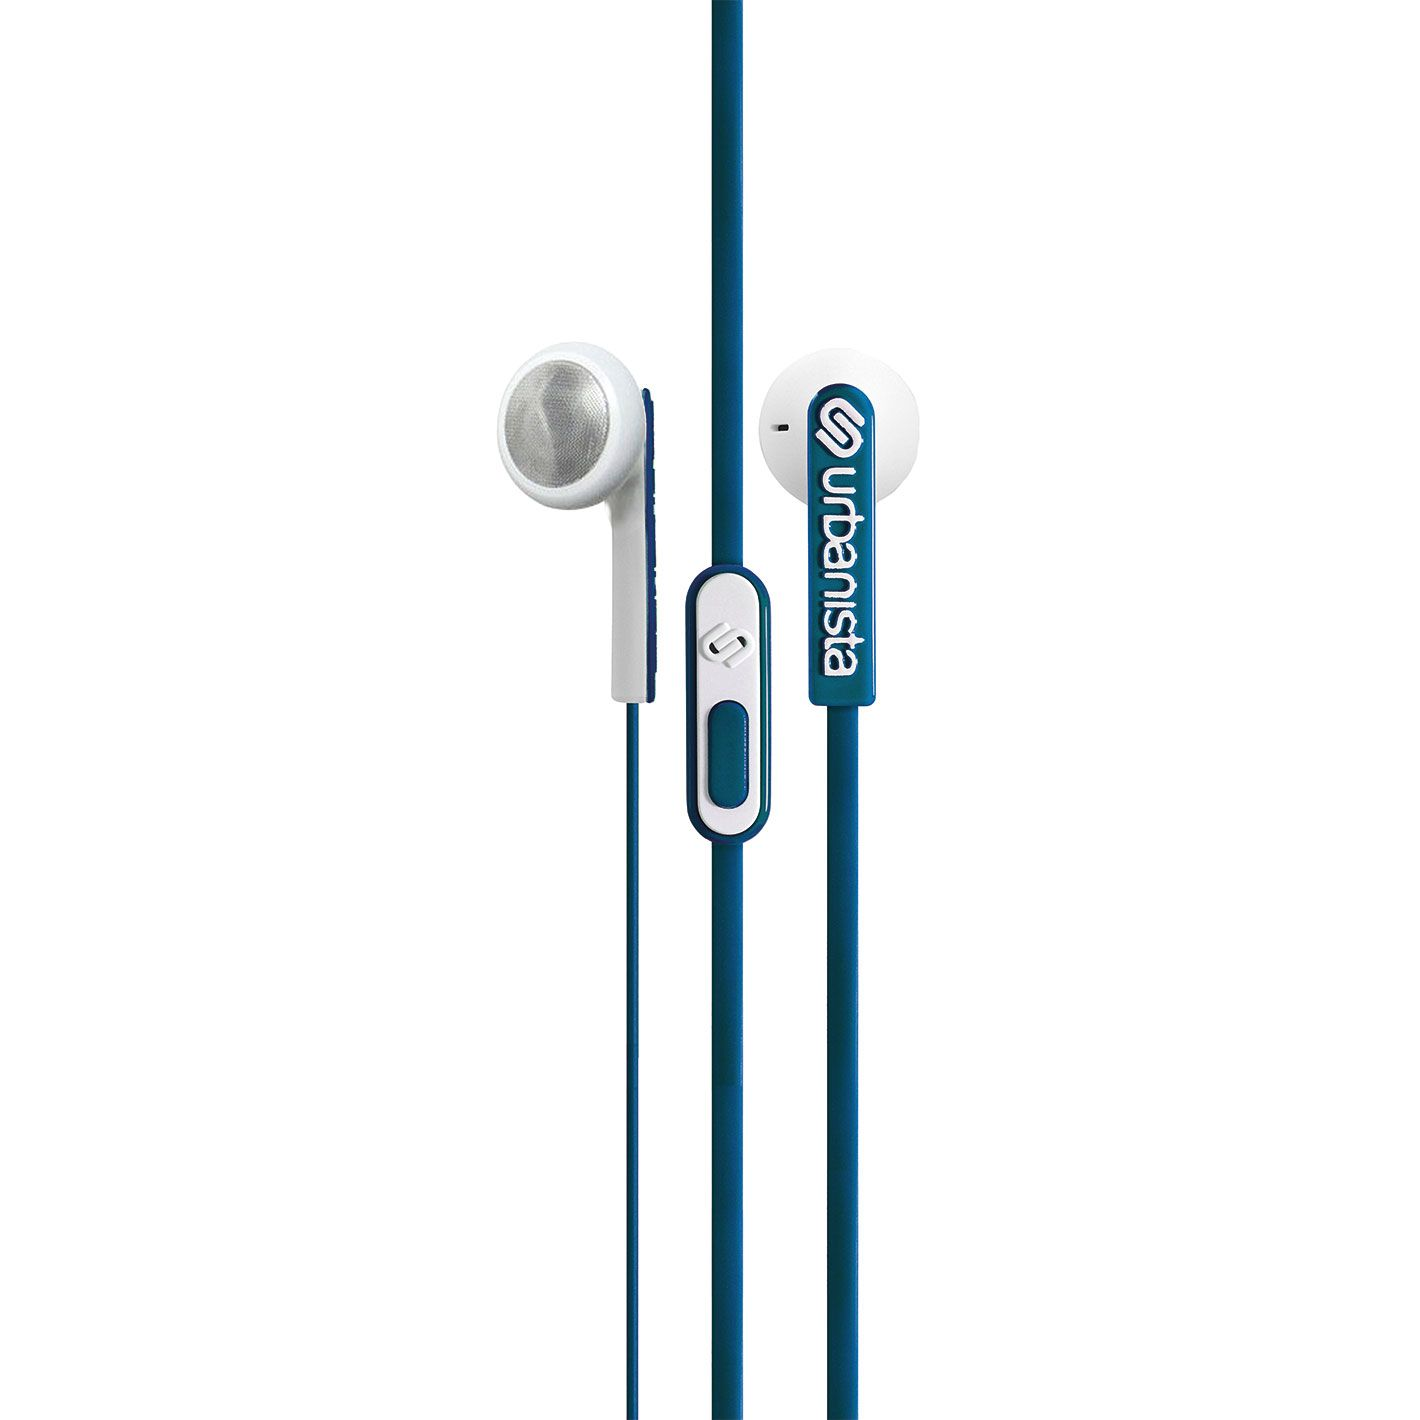 Urbanista Osla Earphone|Control Music|Call|Fit iOS Android Windows|Petral Blue